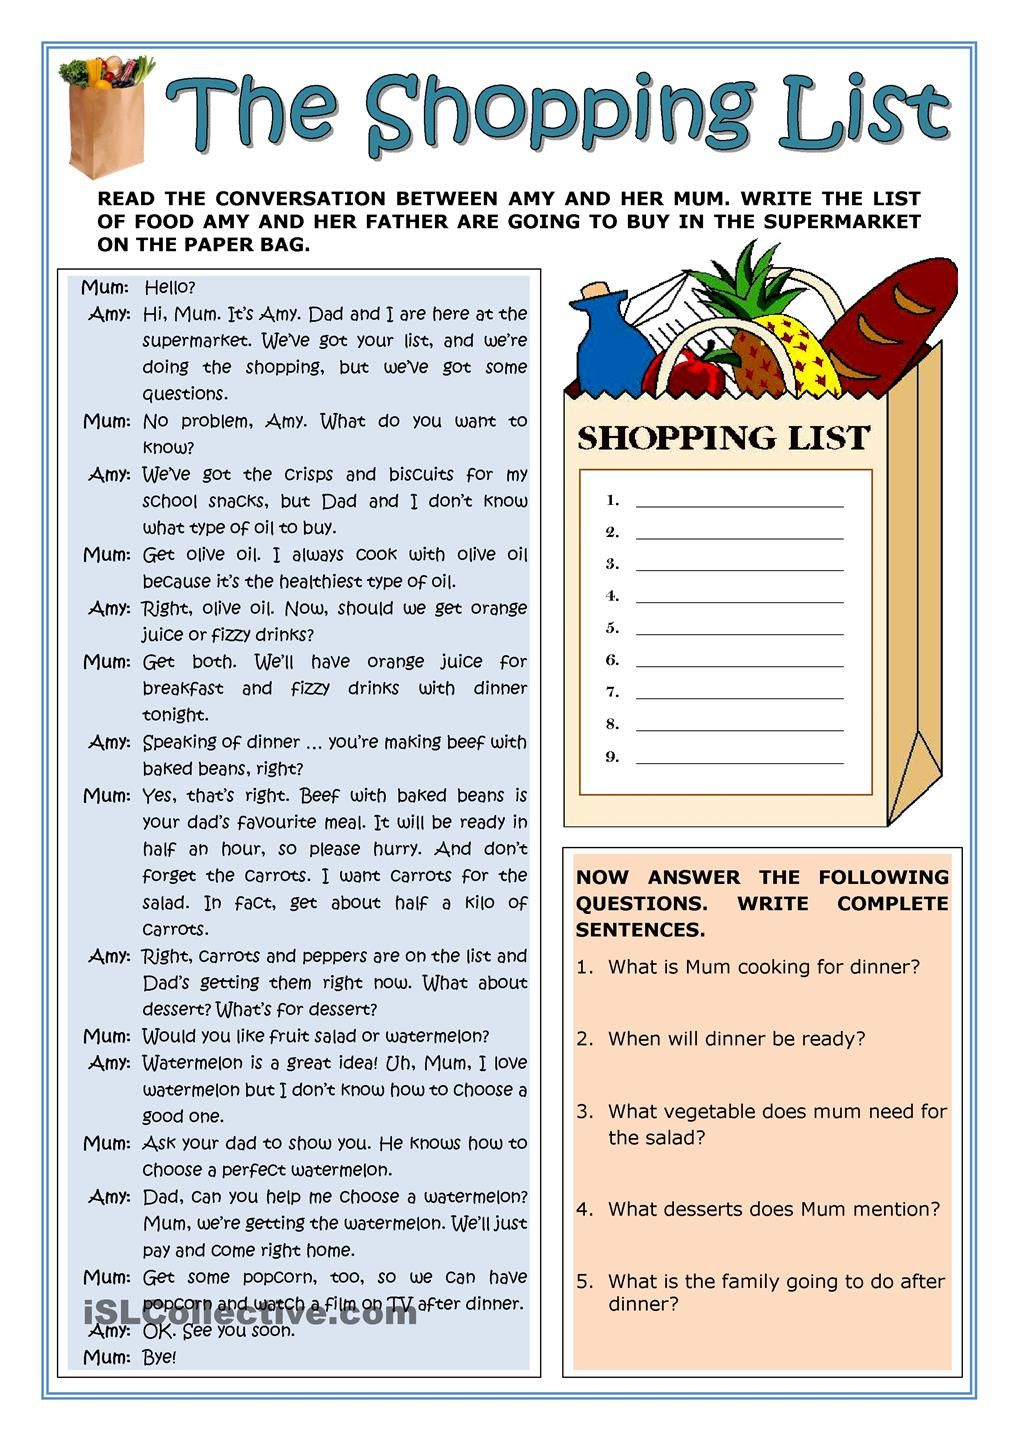 EnvironmentQuiz FREE ESL worksheets school – Esl Worksheets for Adults